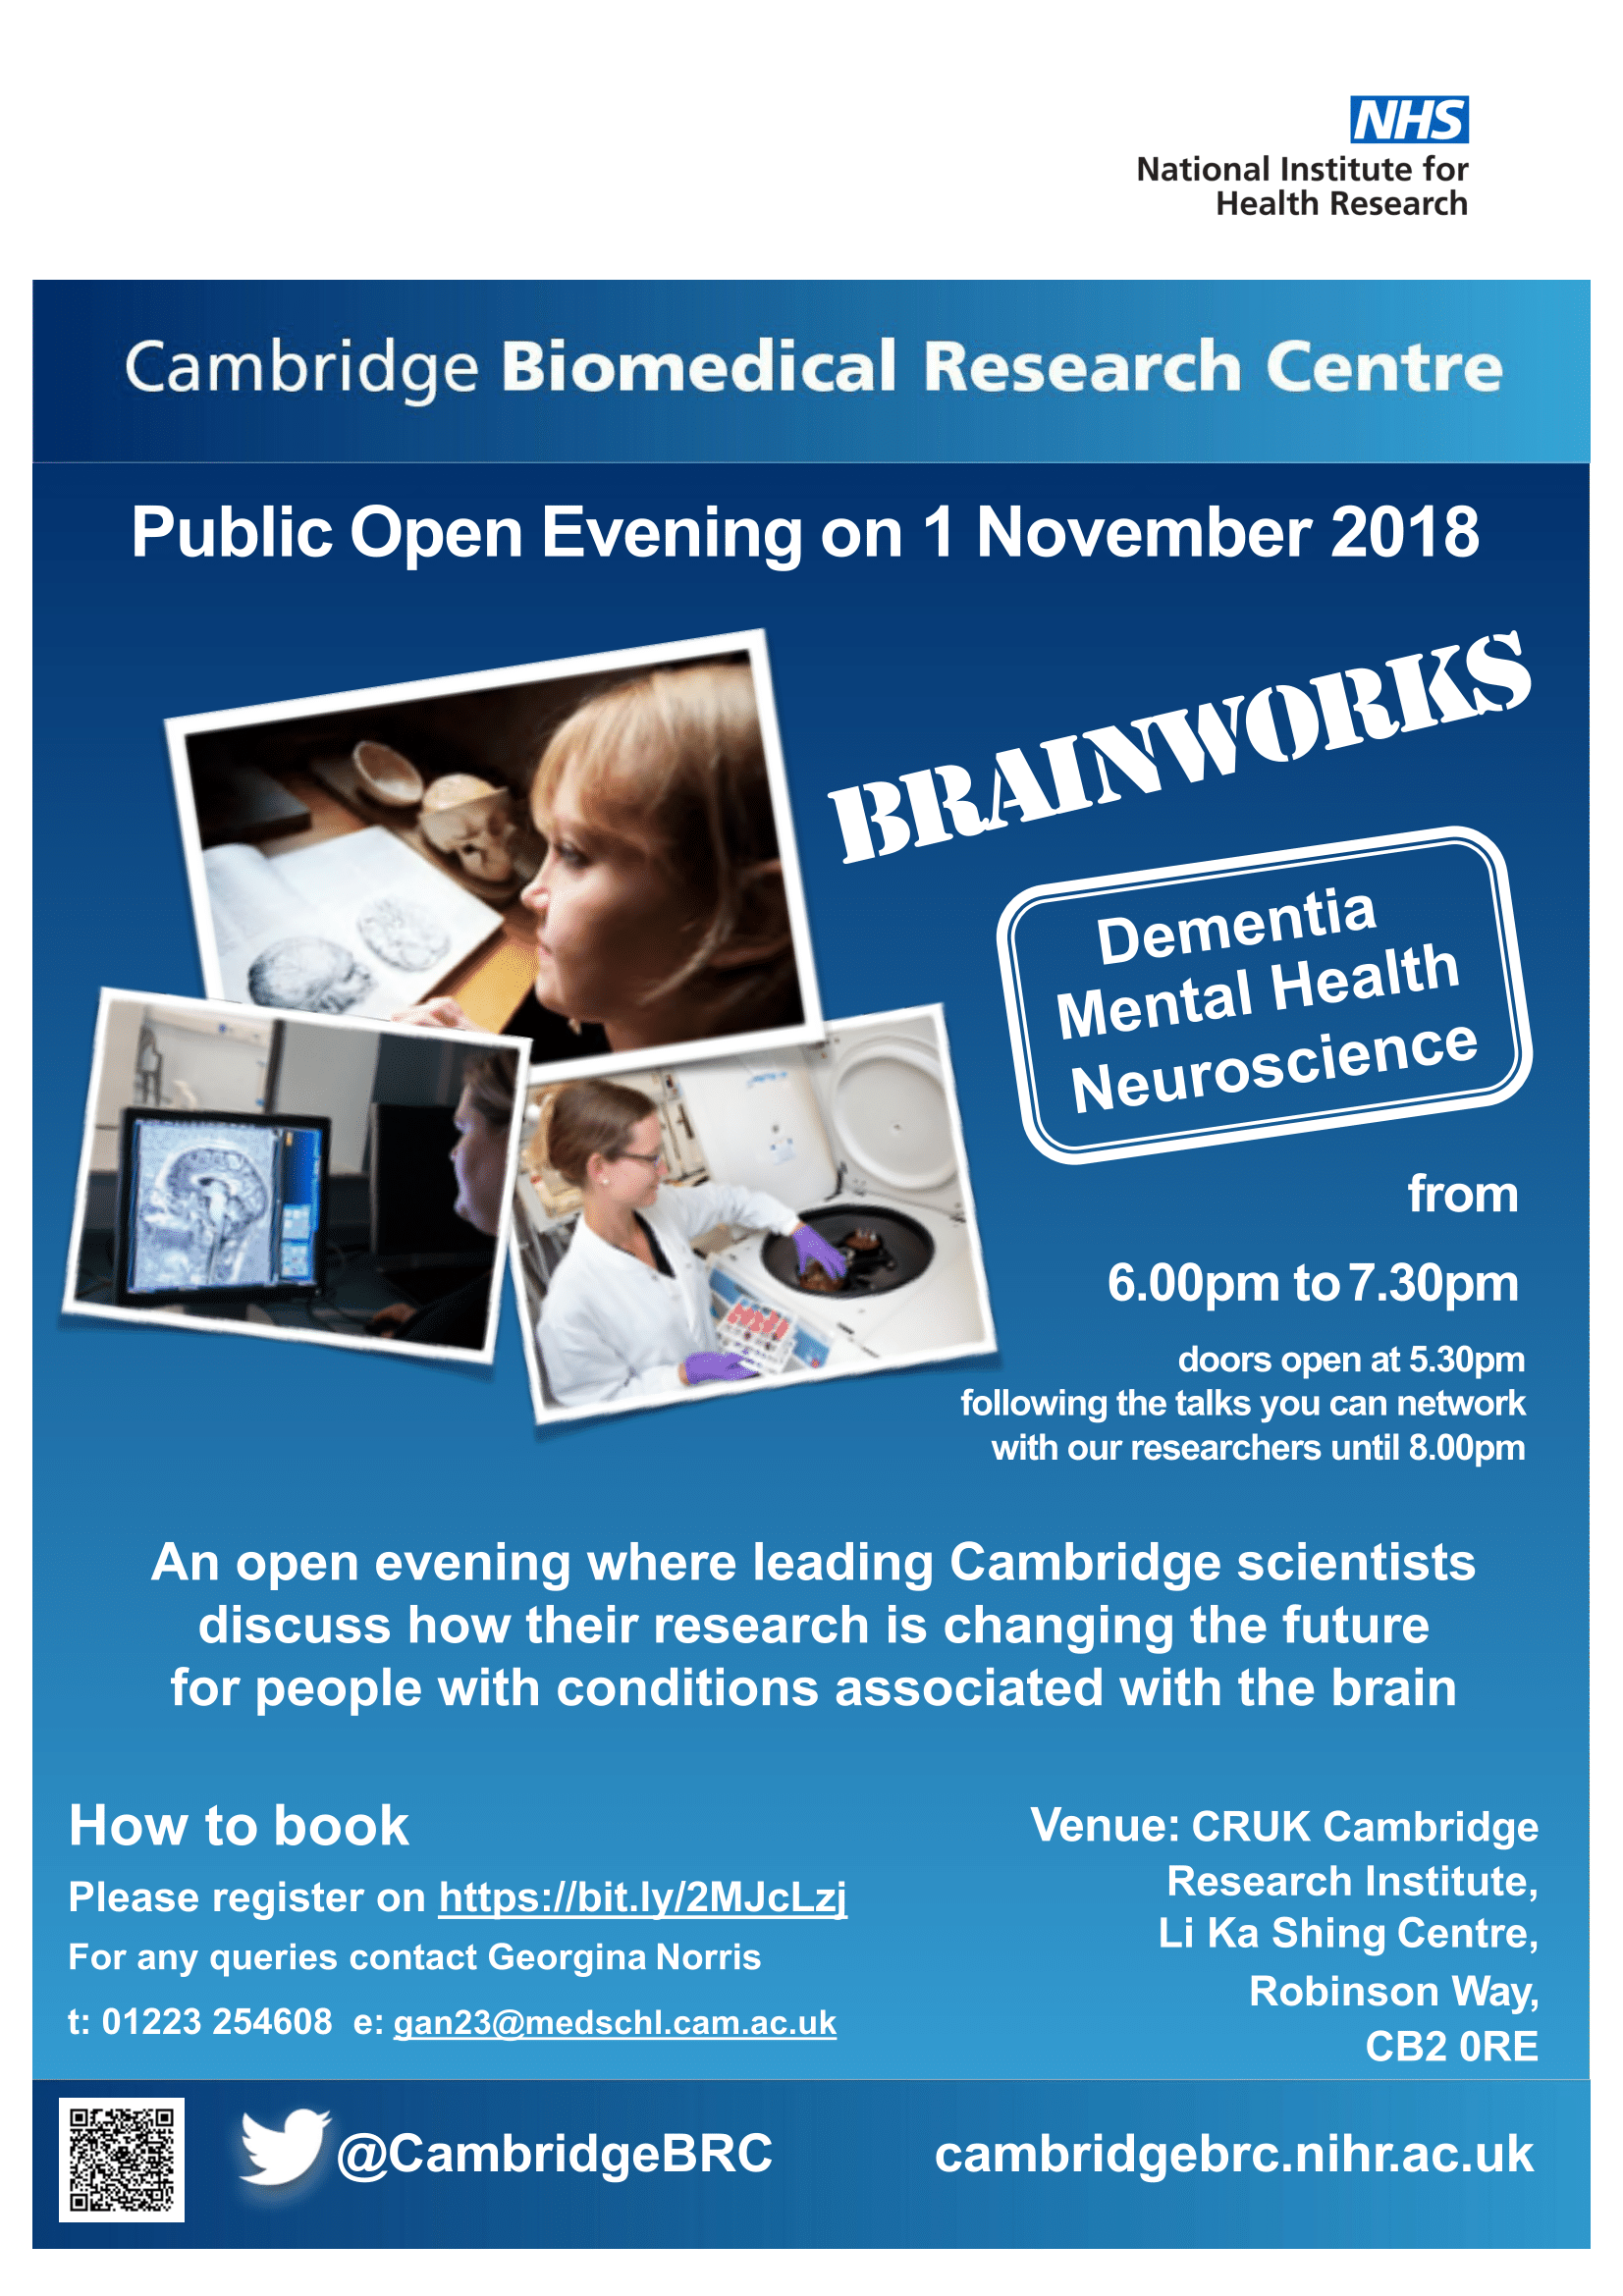 Cambridge BRC Public Open Evening Poster